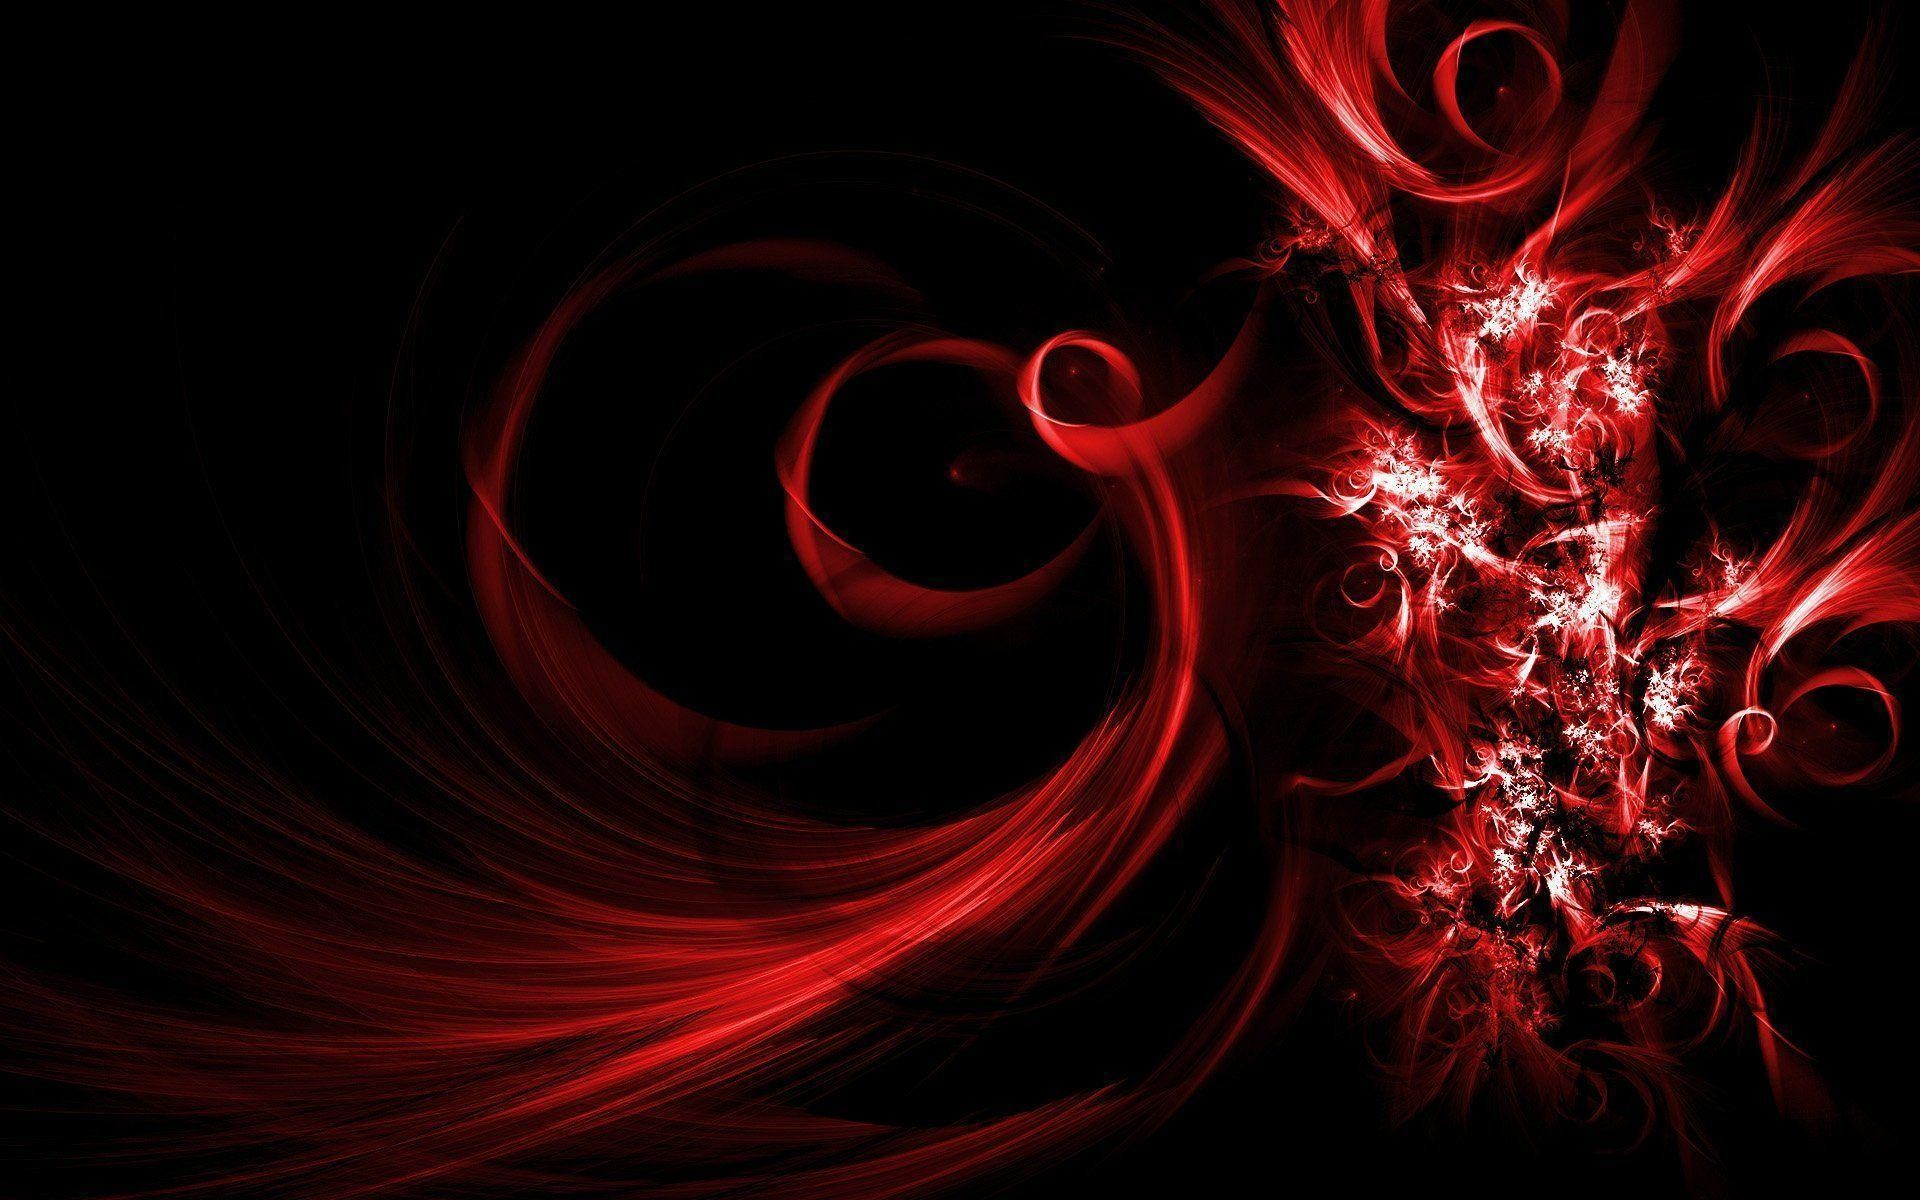 Red Abstract Wallpapers – Full HD wallpaper search